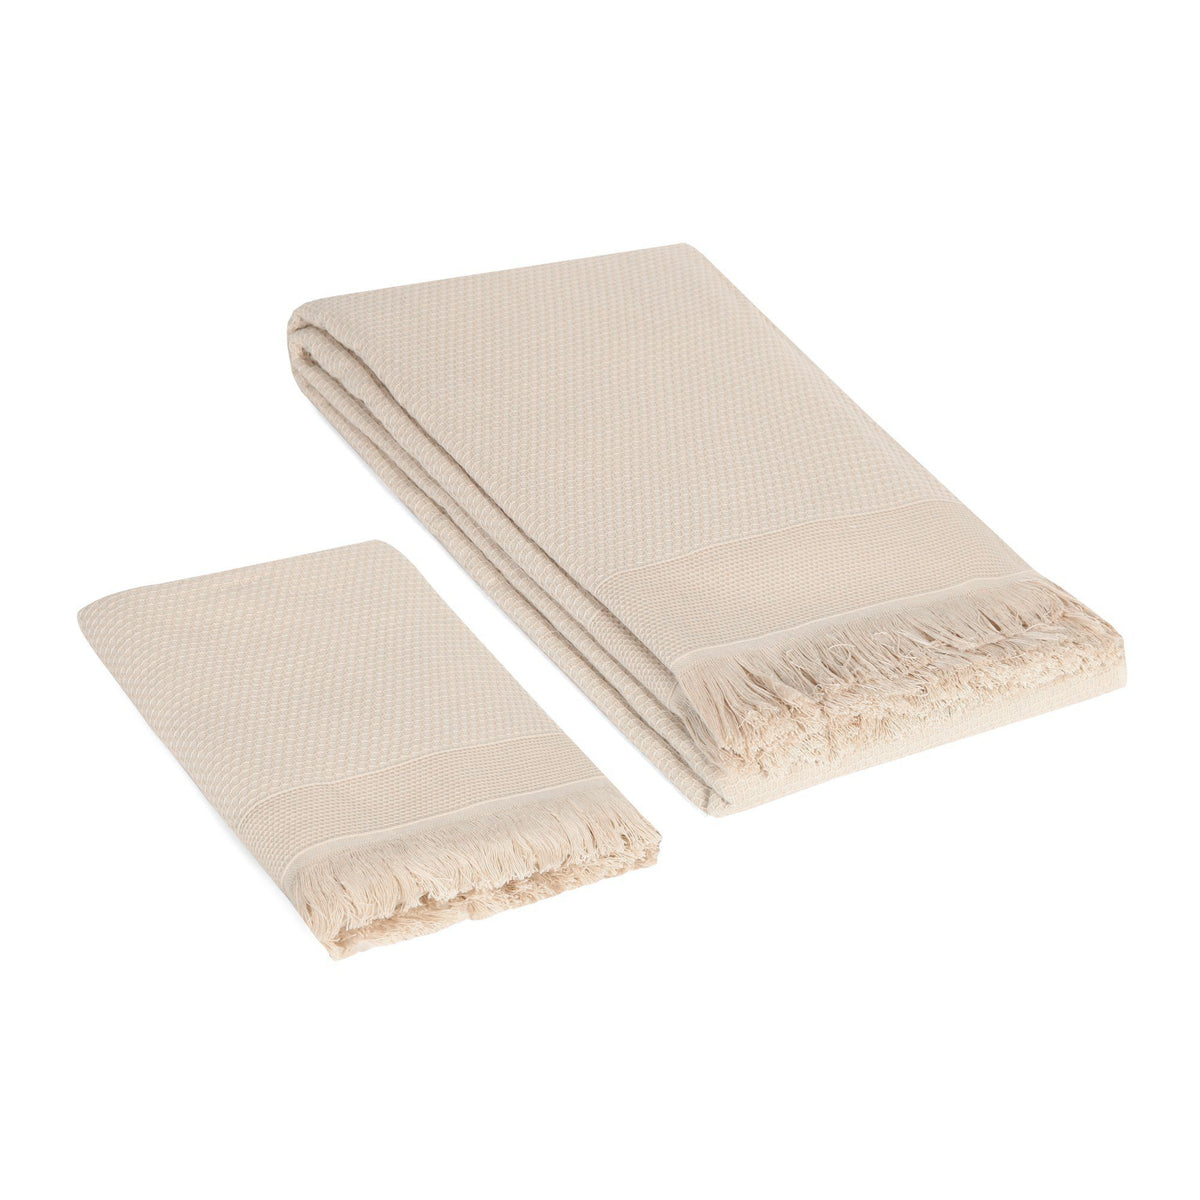 Elements Turkish Towel Set